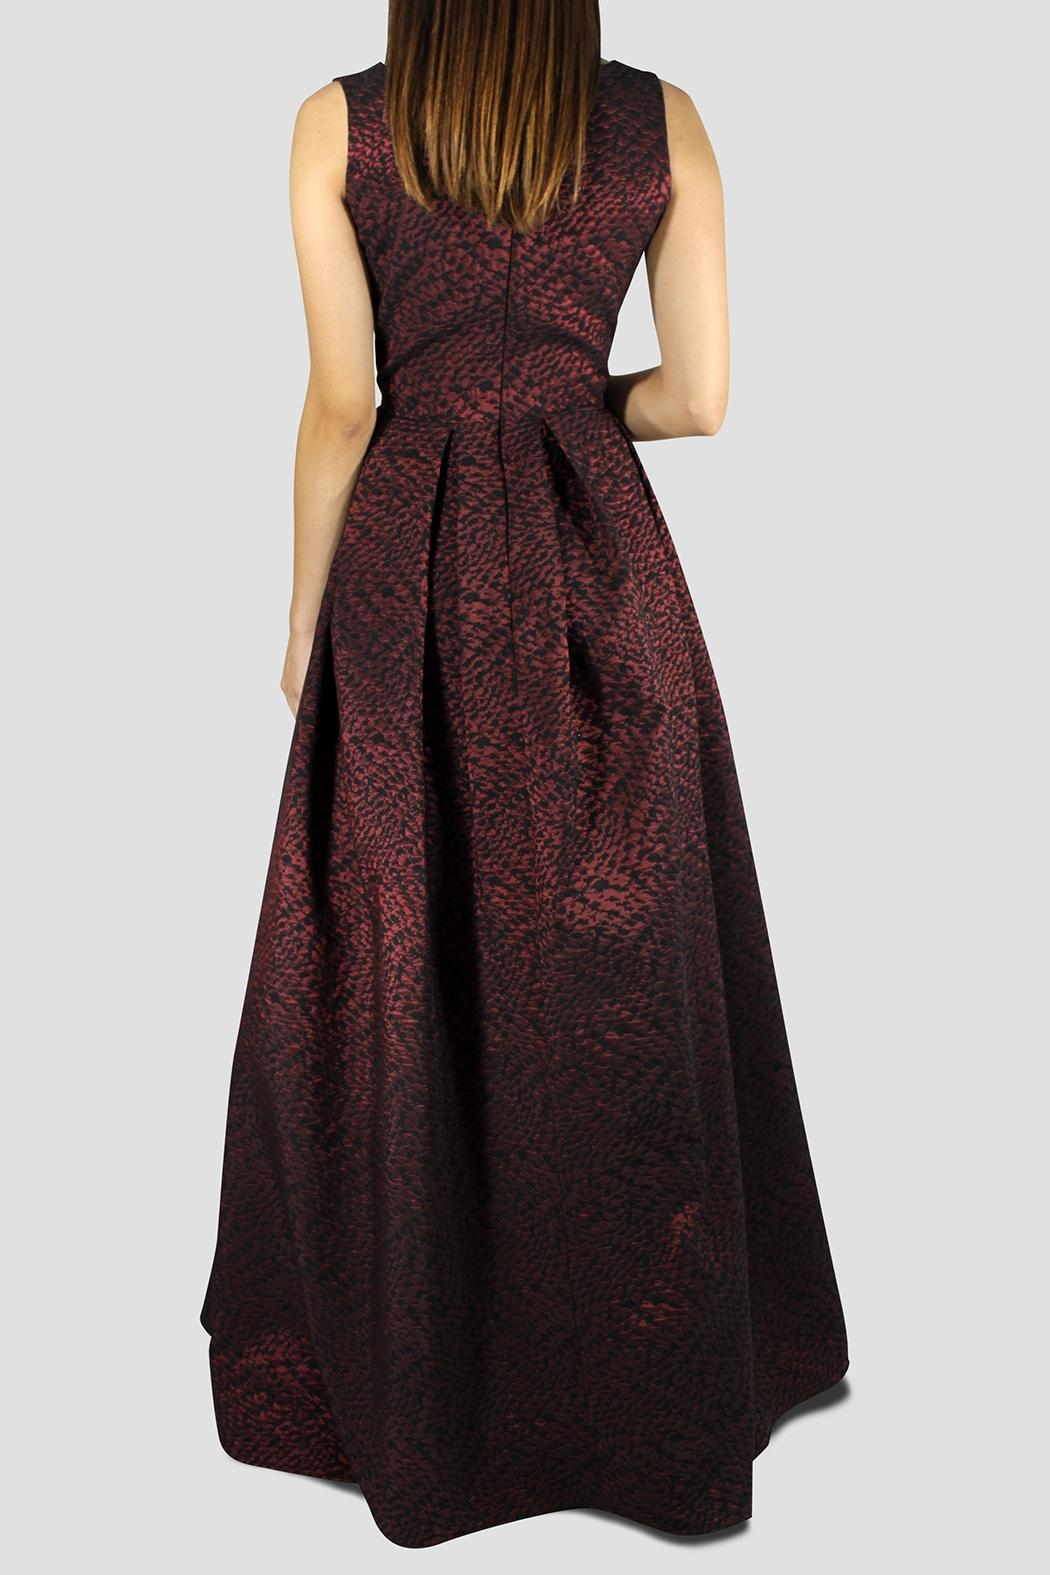 SoZu Empire Bronze Dress - Side Cropped Image